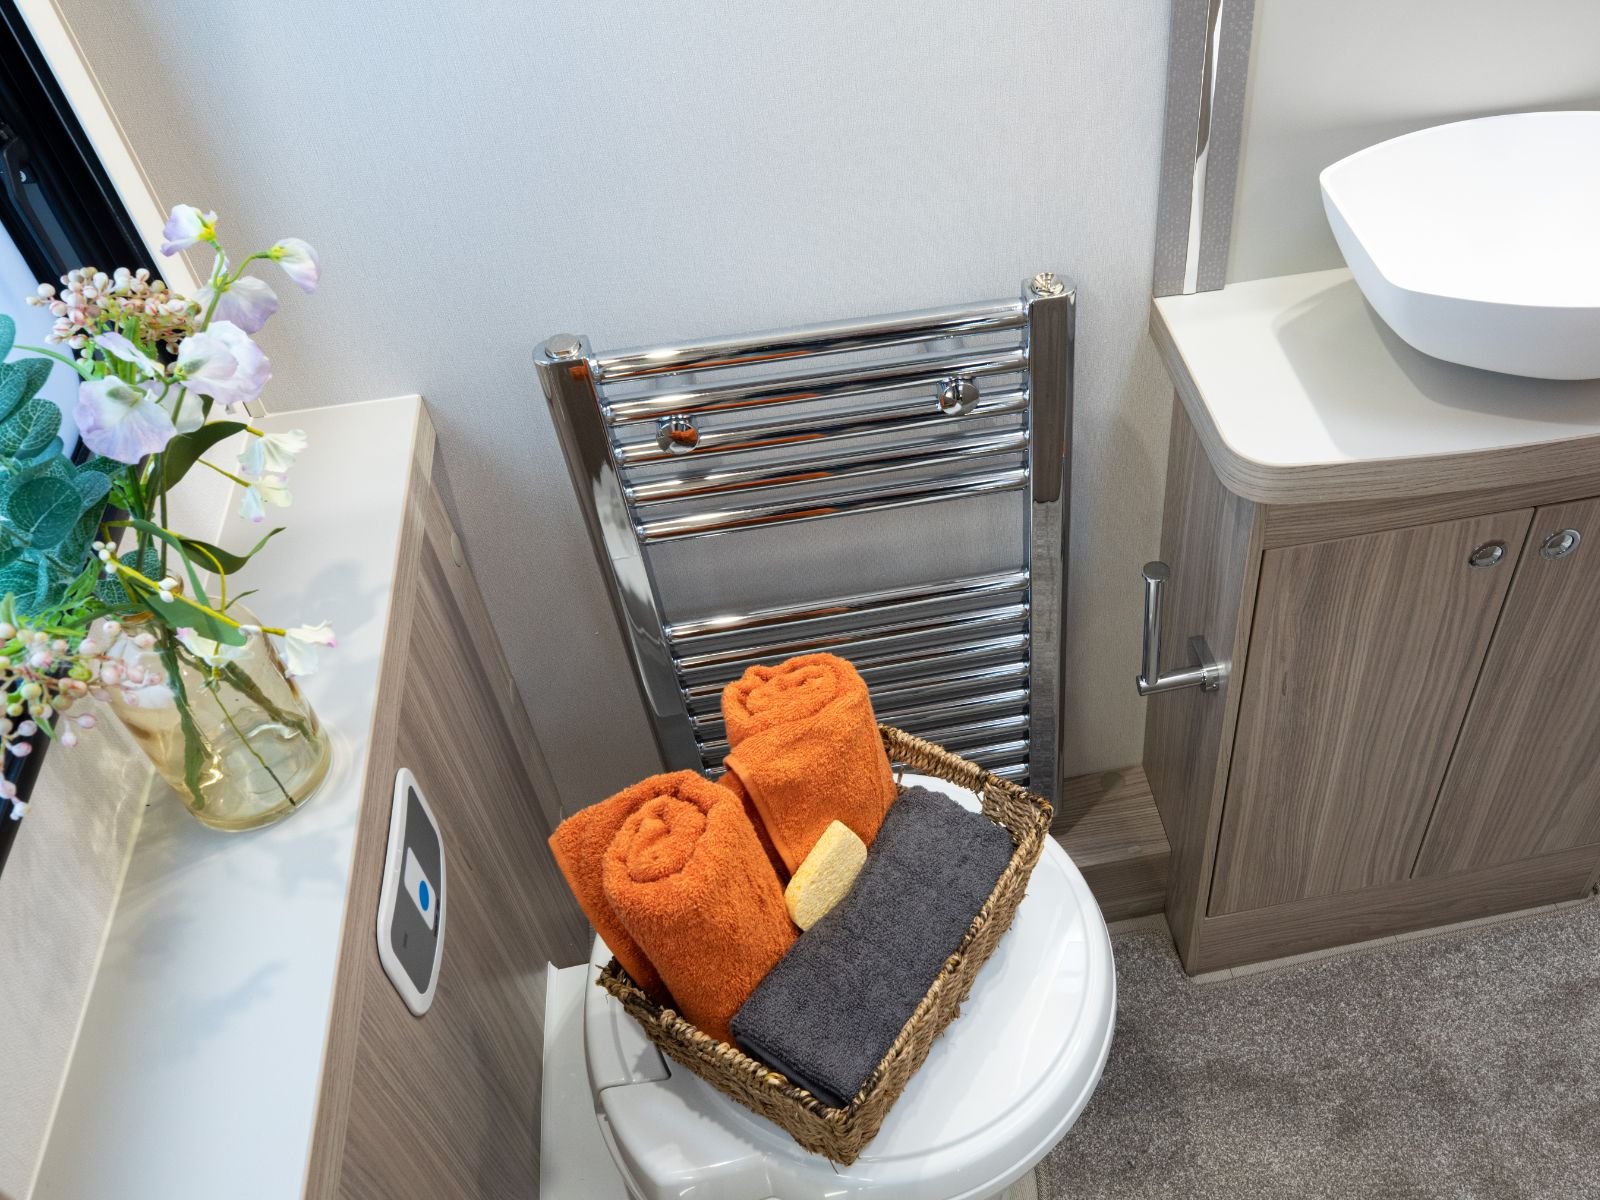 Toilet and sink with basket of towels on top of toilet and heated towel rail '